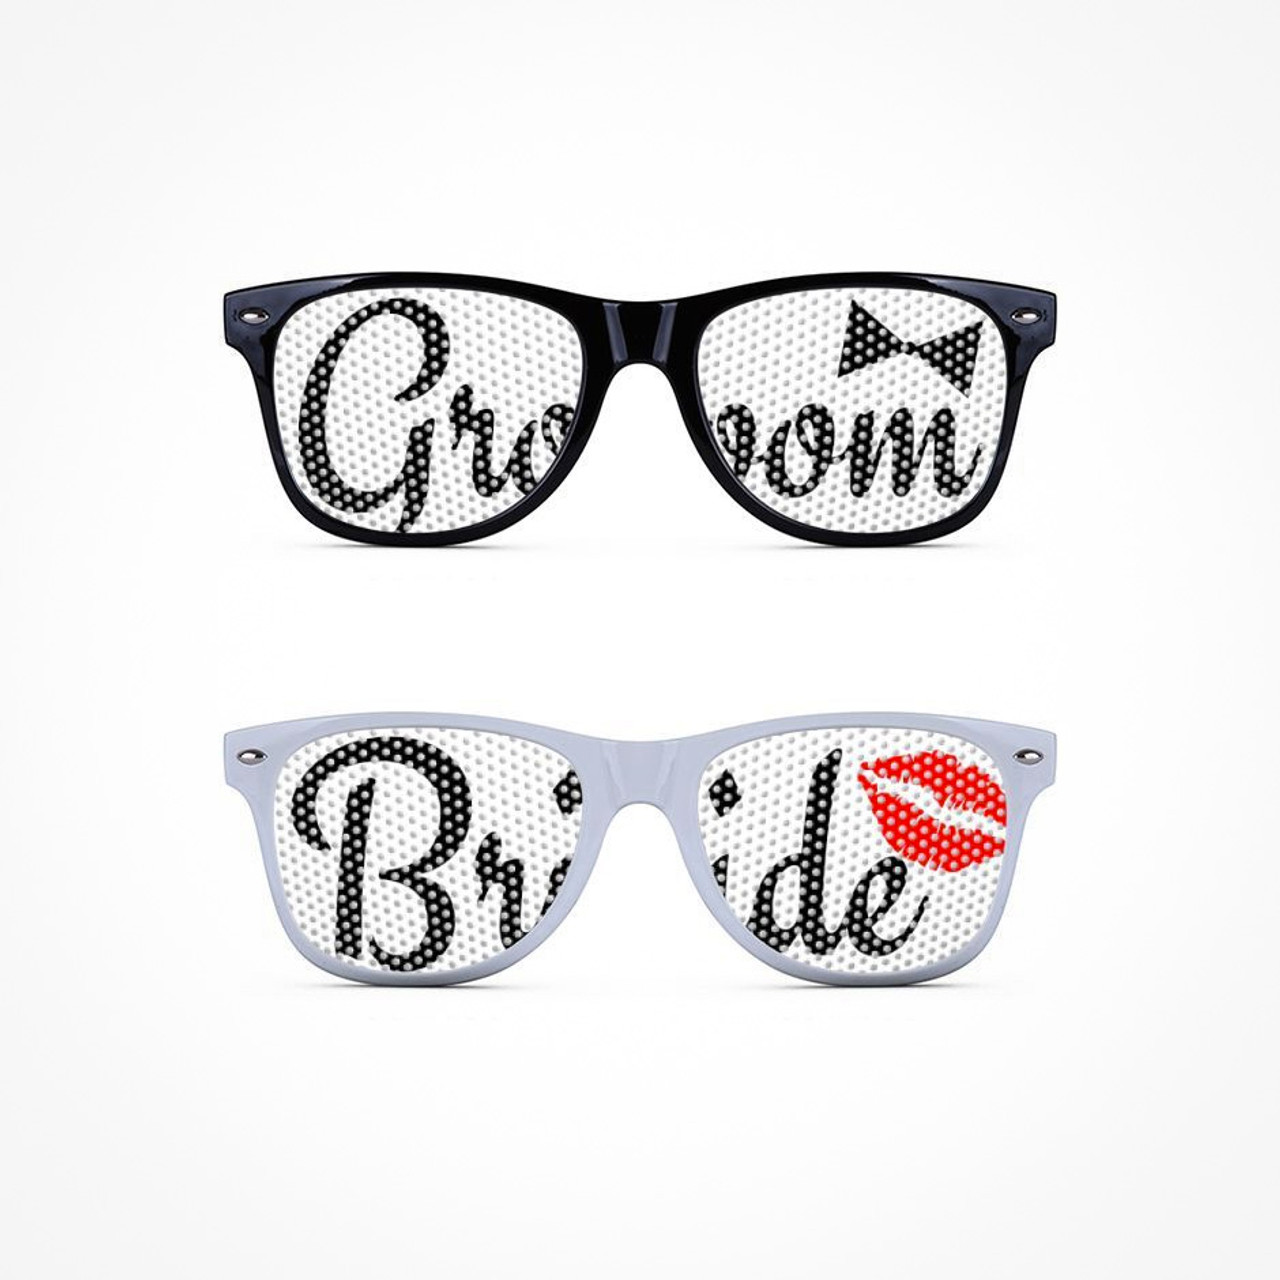 Customized Sunglasses For Wedding | King of Sparklers